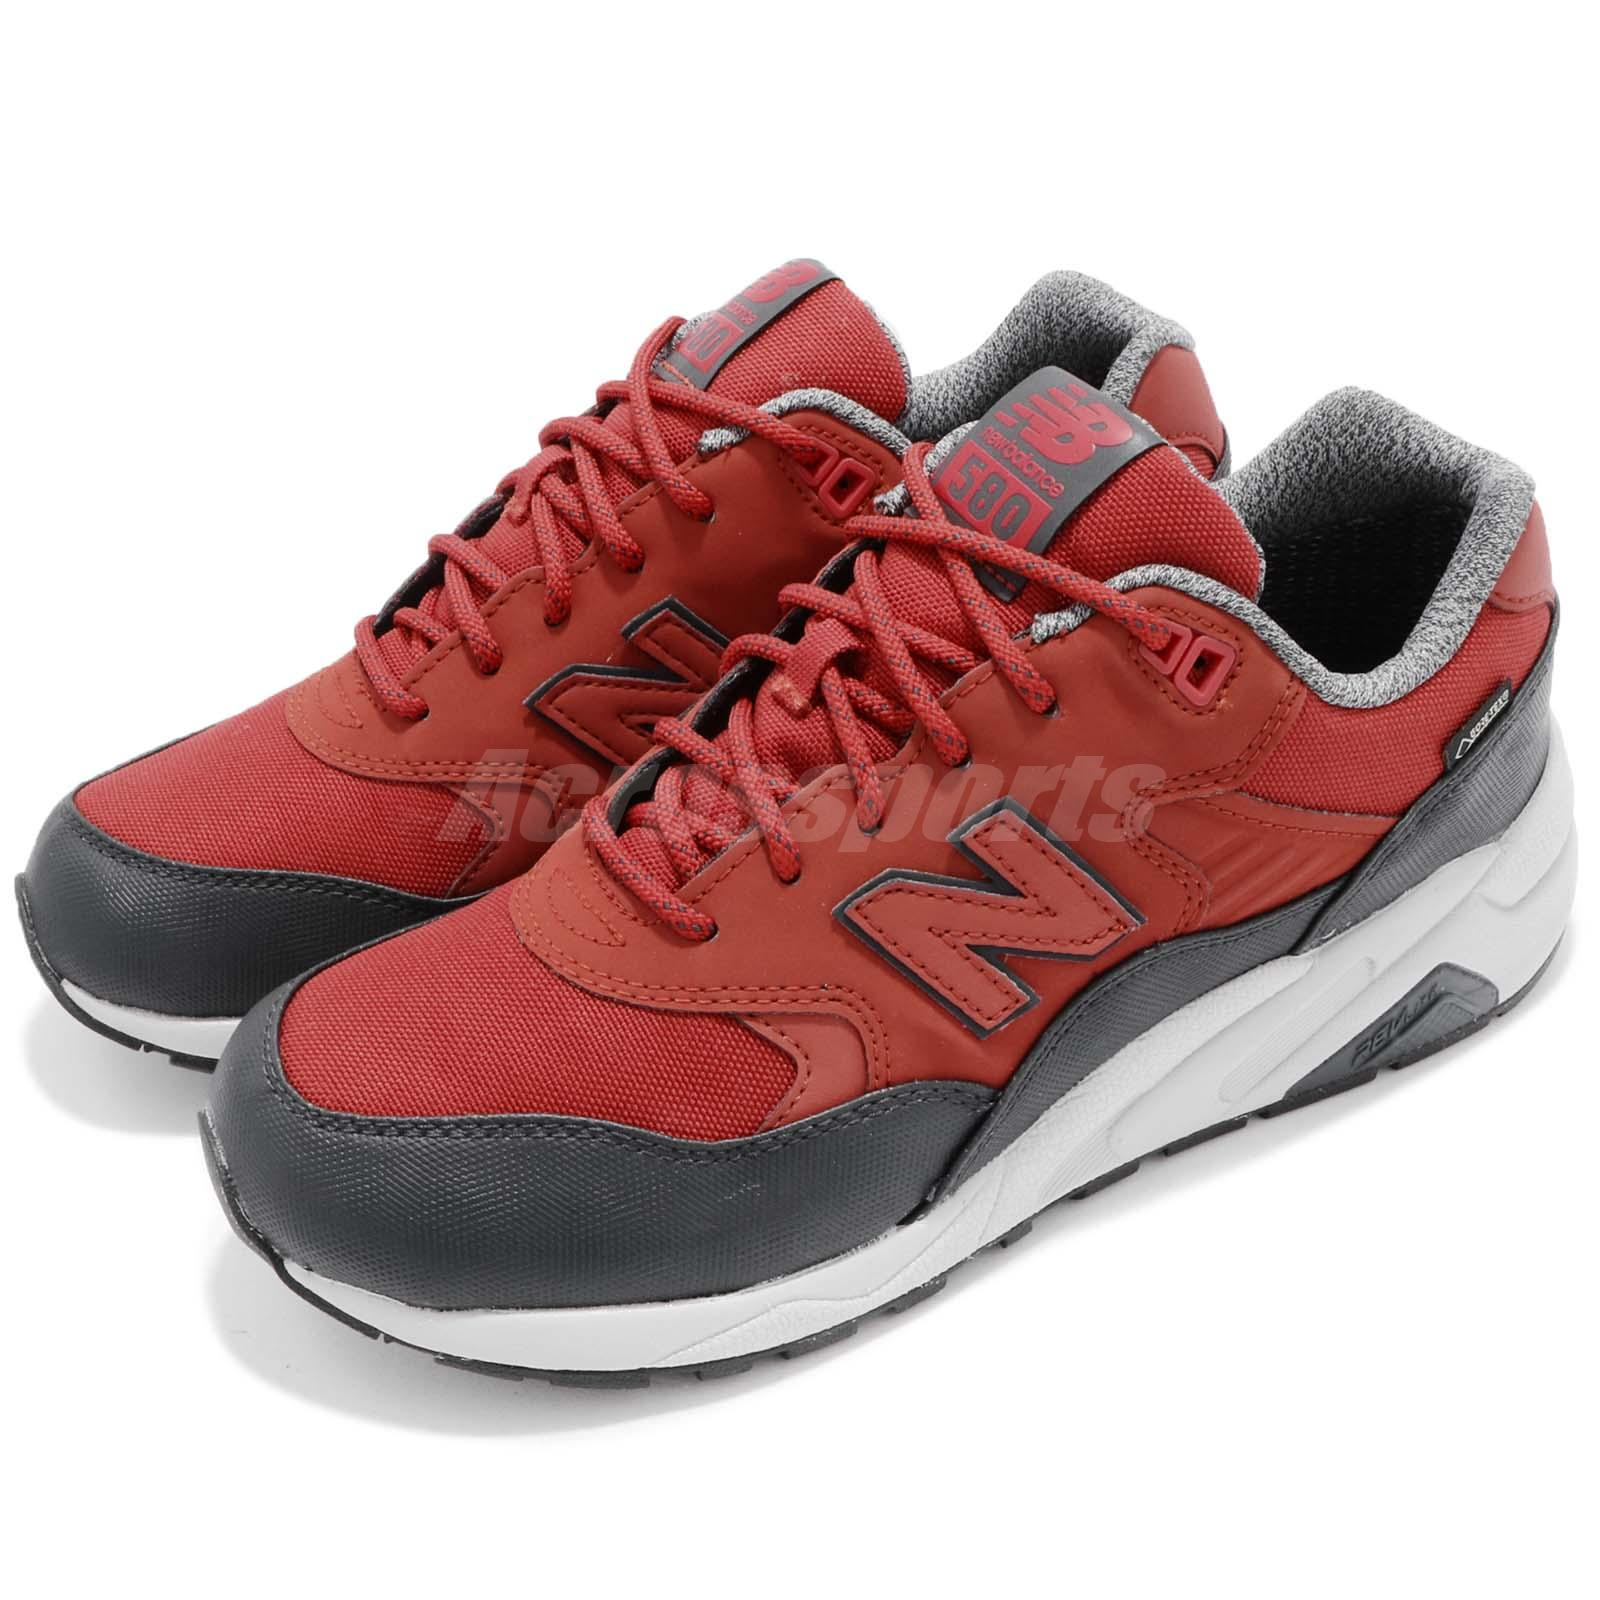 New Balance Tier 2 MRT580 Gore Tex Red Black Men Running Shoe Sneakers MRT580XRD